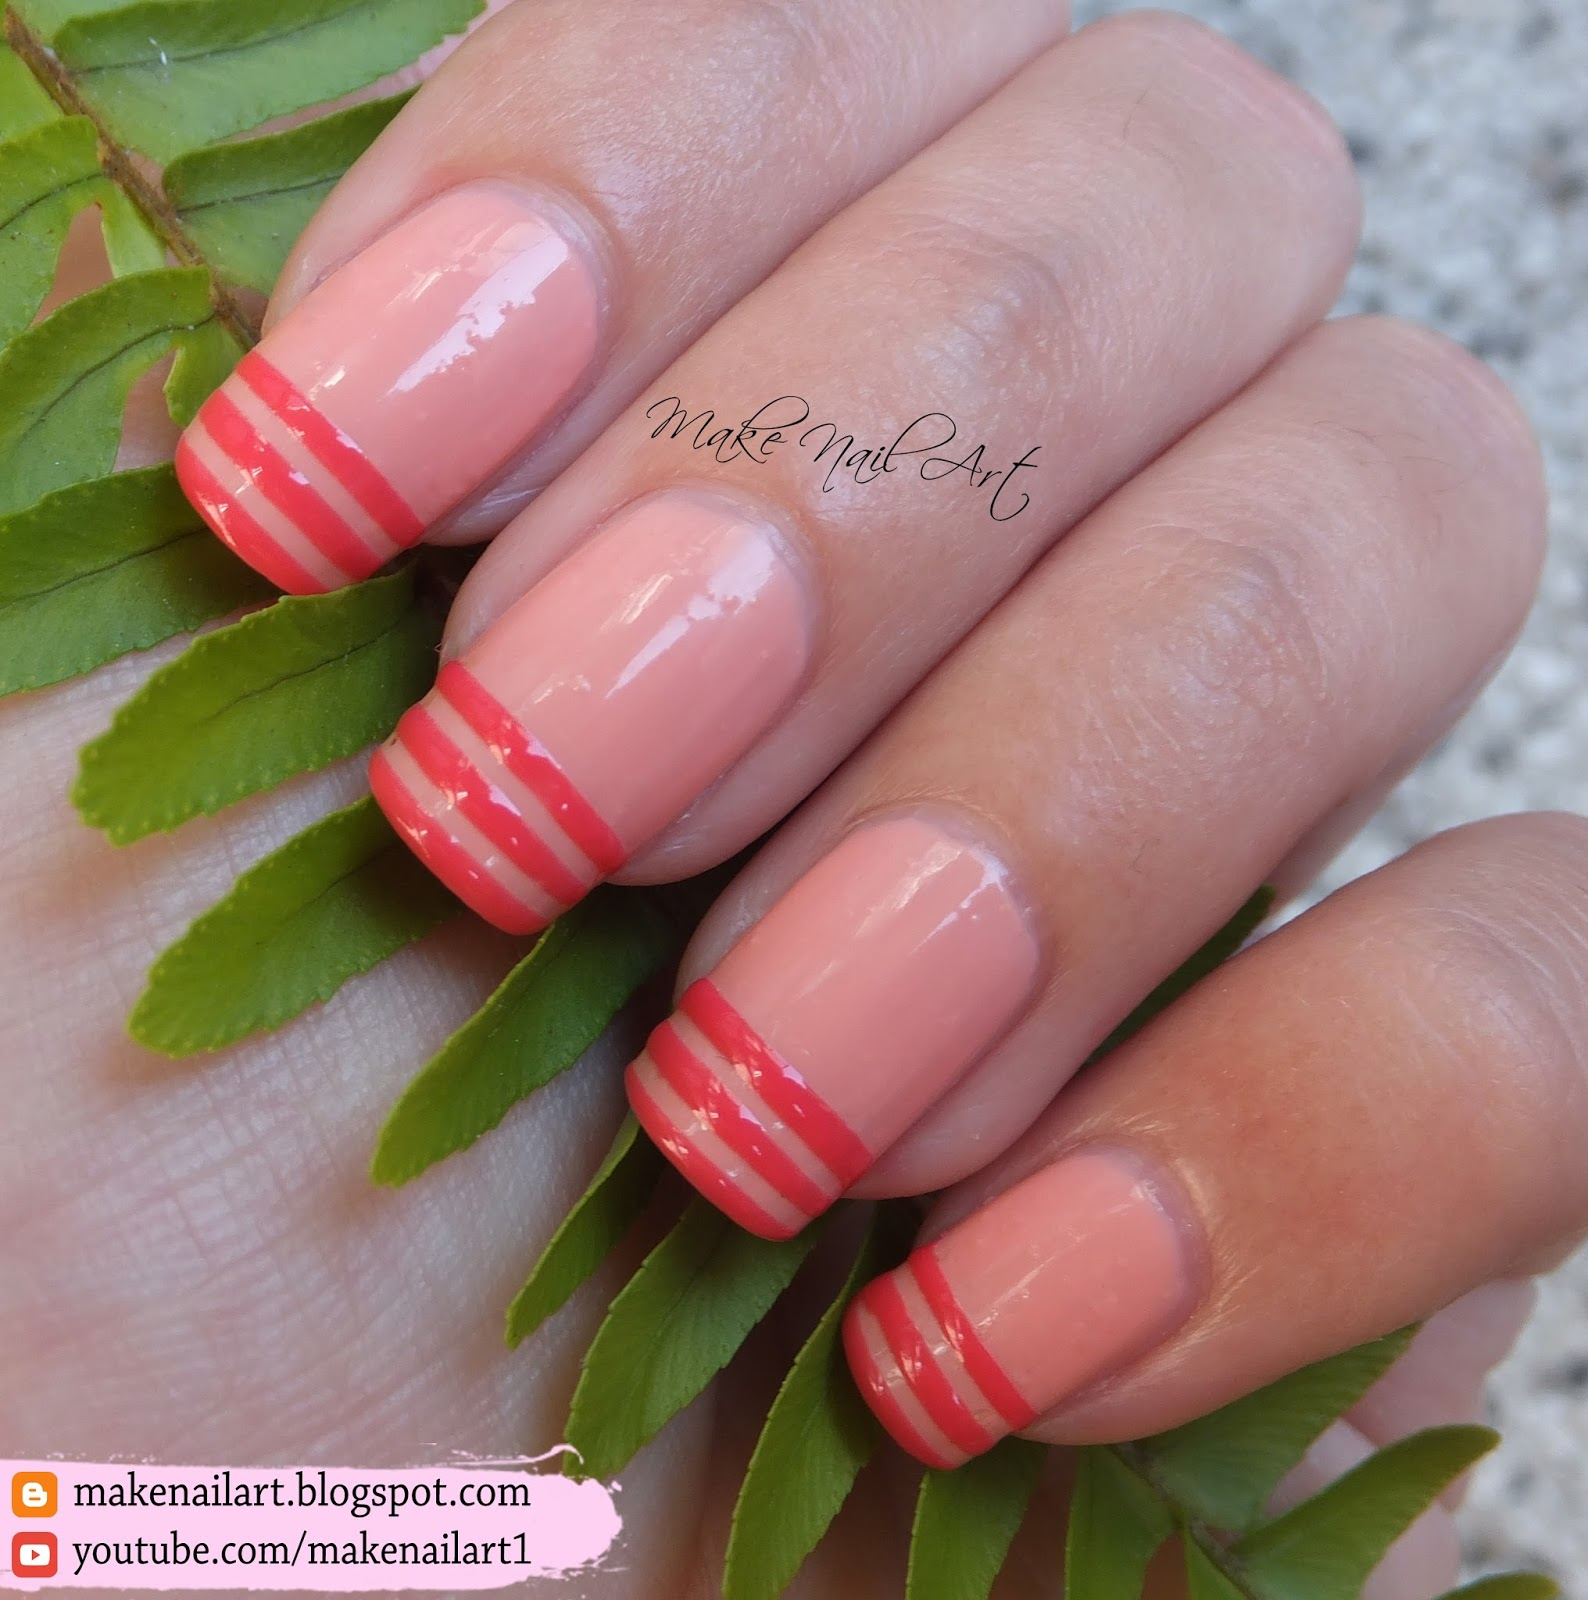 Make Nail Art: French Manicure With Stripes Nail Art ...